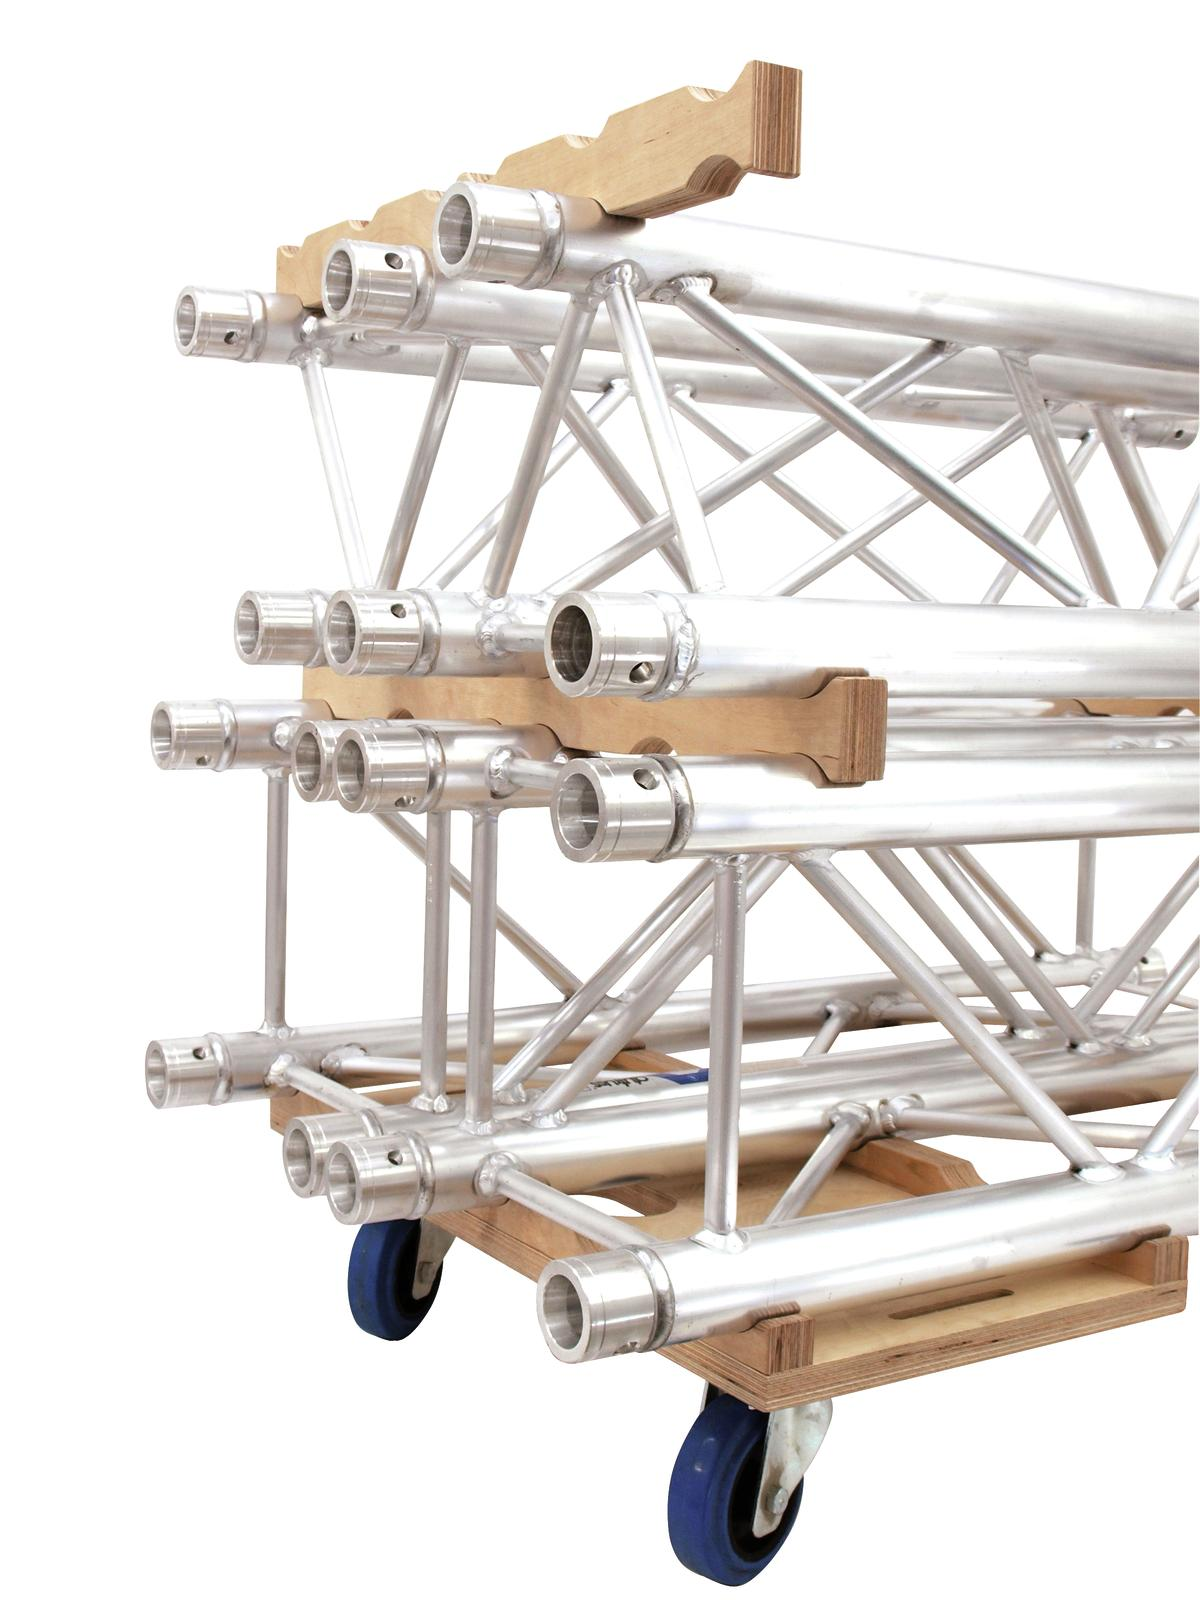 Set Composto da 8 Traverse Truss Americane 4 Vie da 2 MT e 2 Carrelli Alutruss